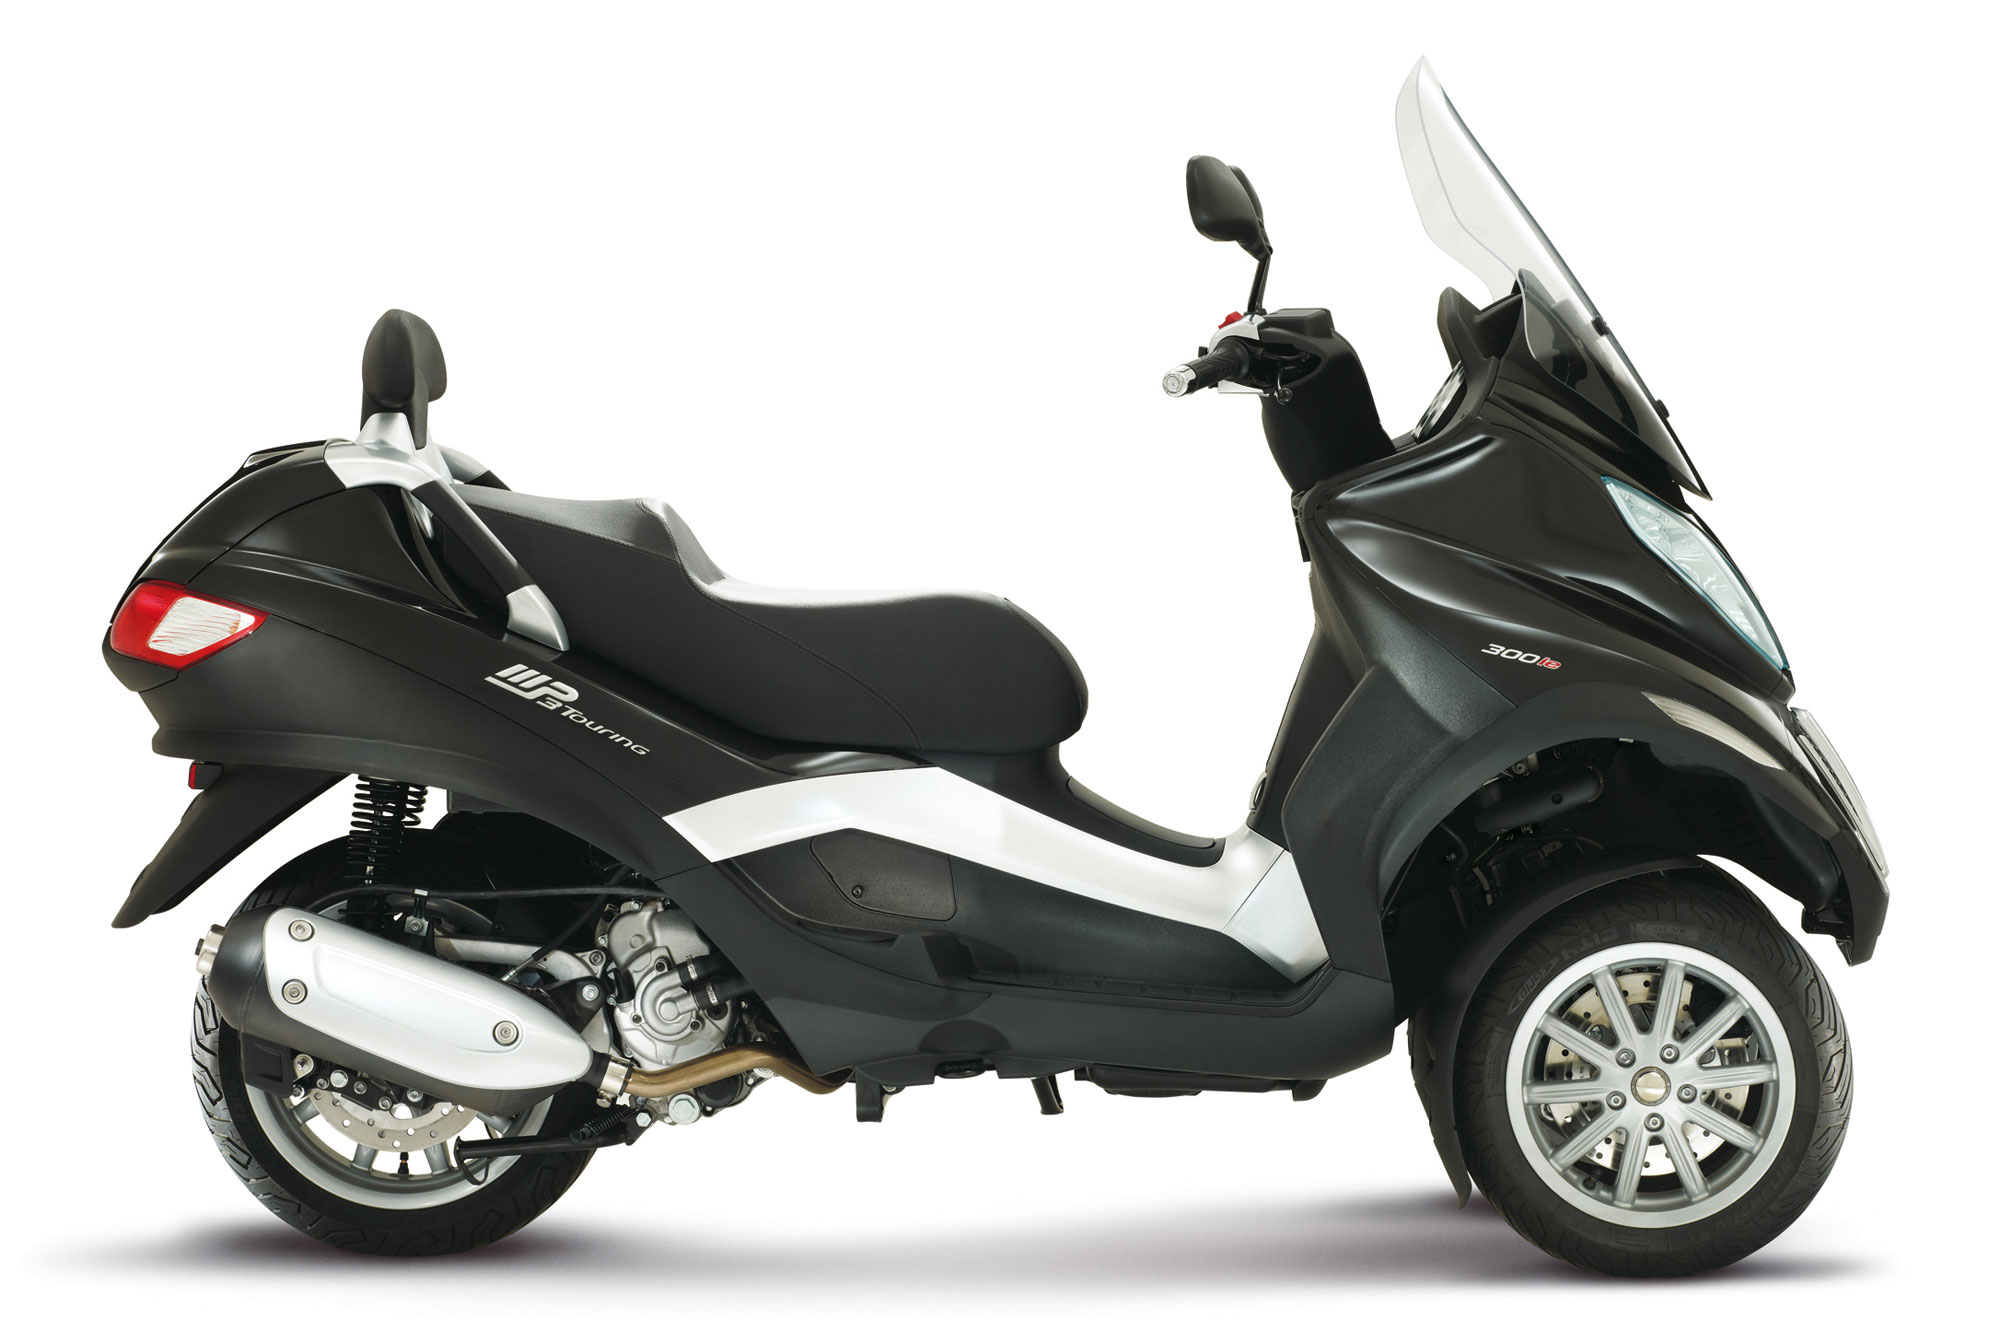 piaggio piaggio mp3 hybrid 125 moto zombdrive com. Black Bedroom Furniture Sets. Home Design Ideas